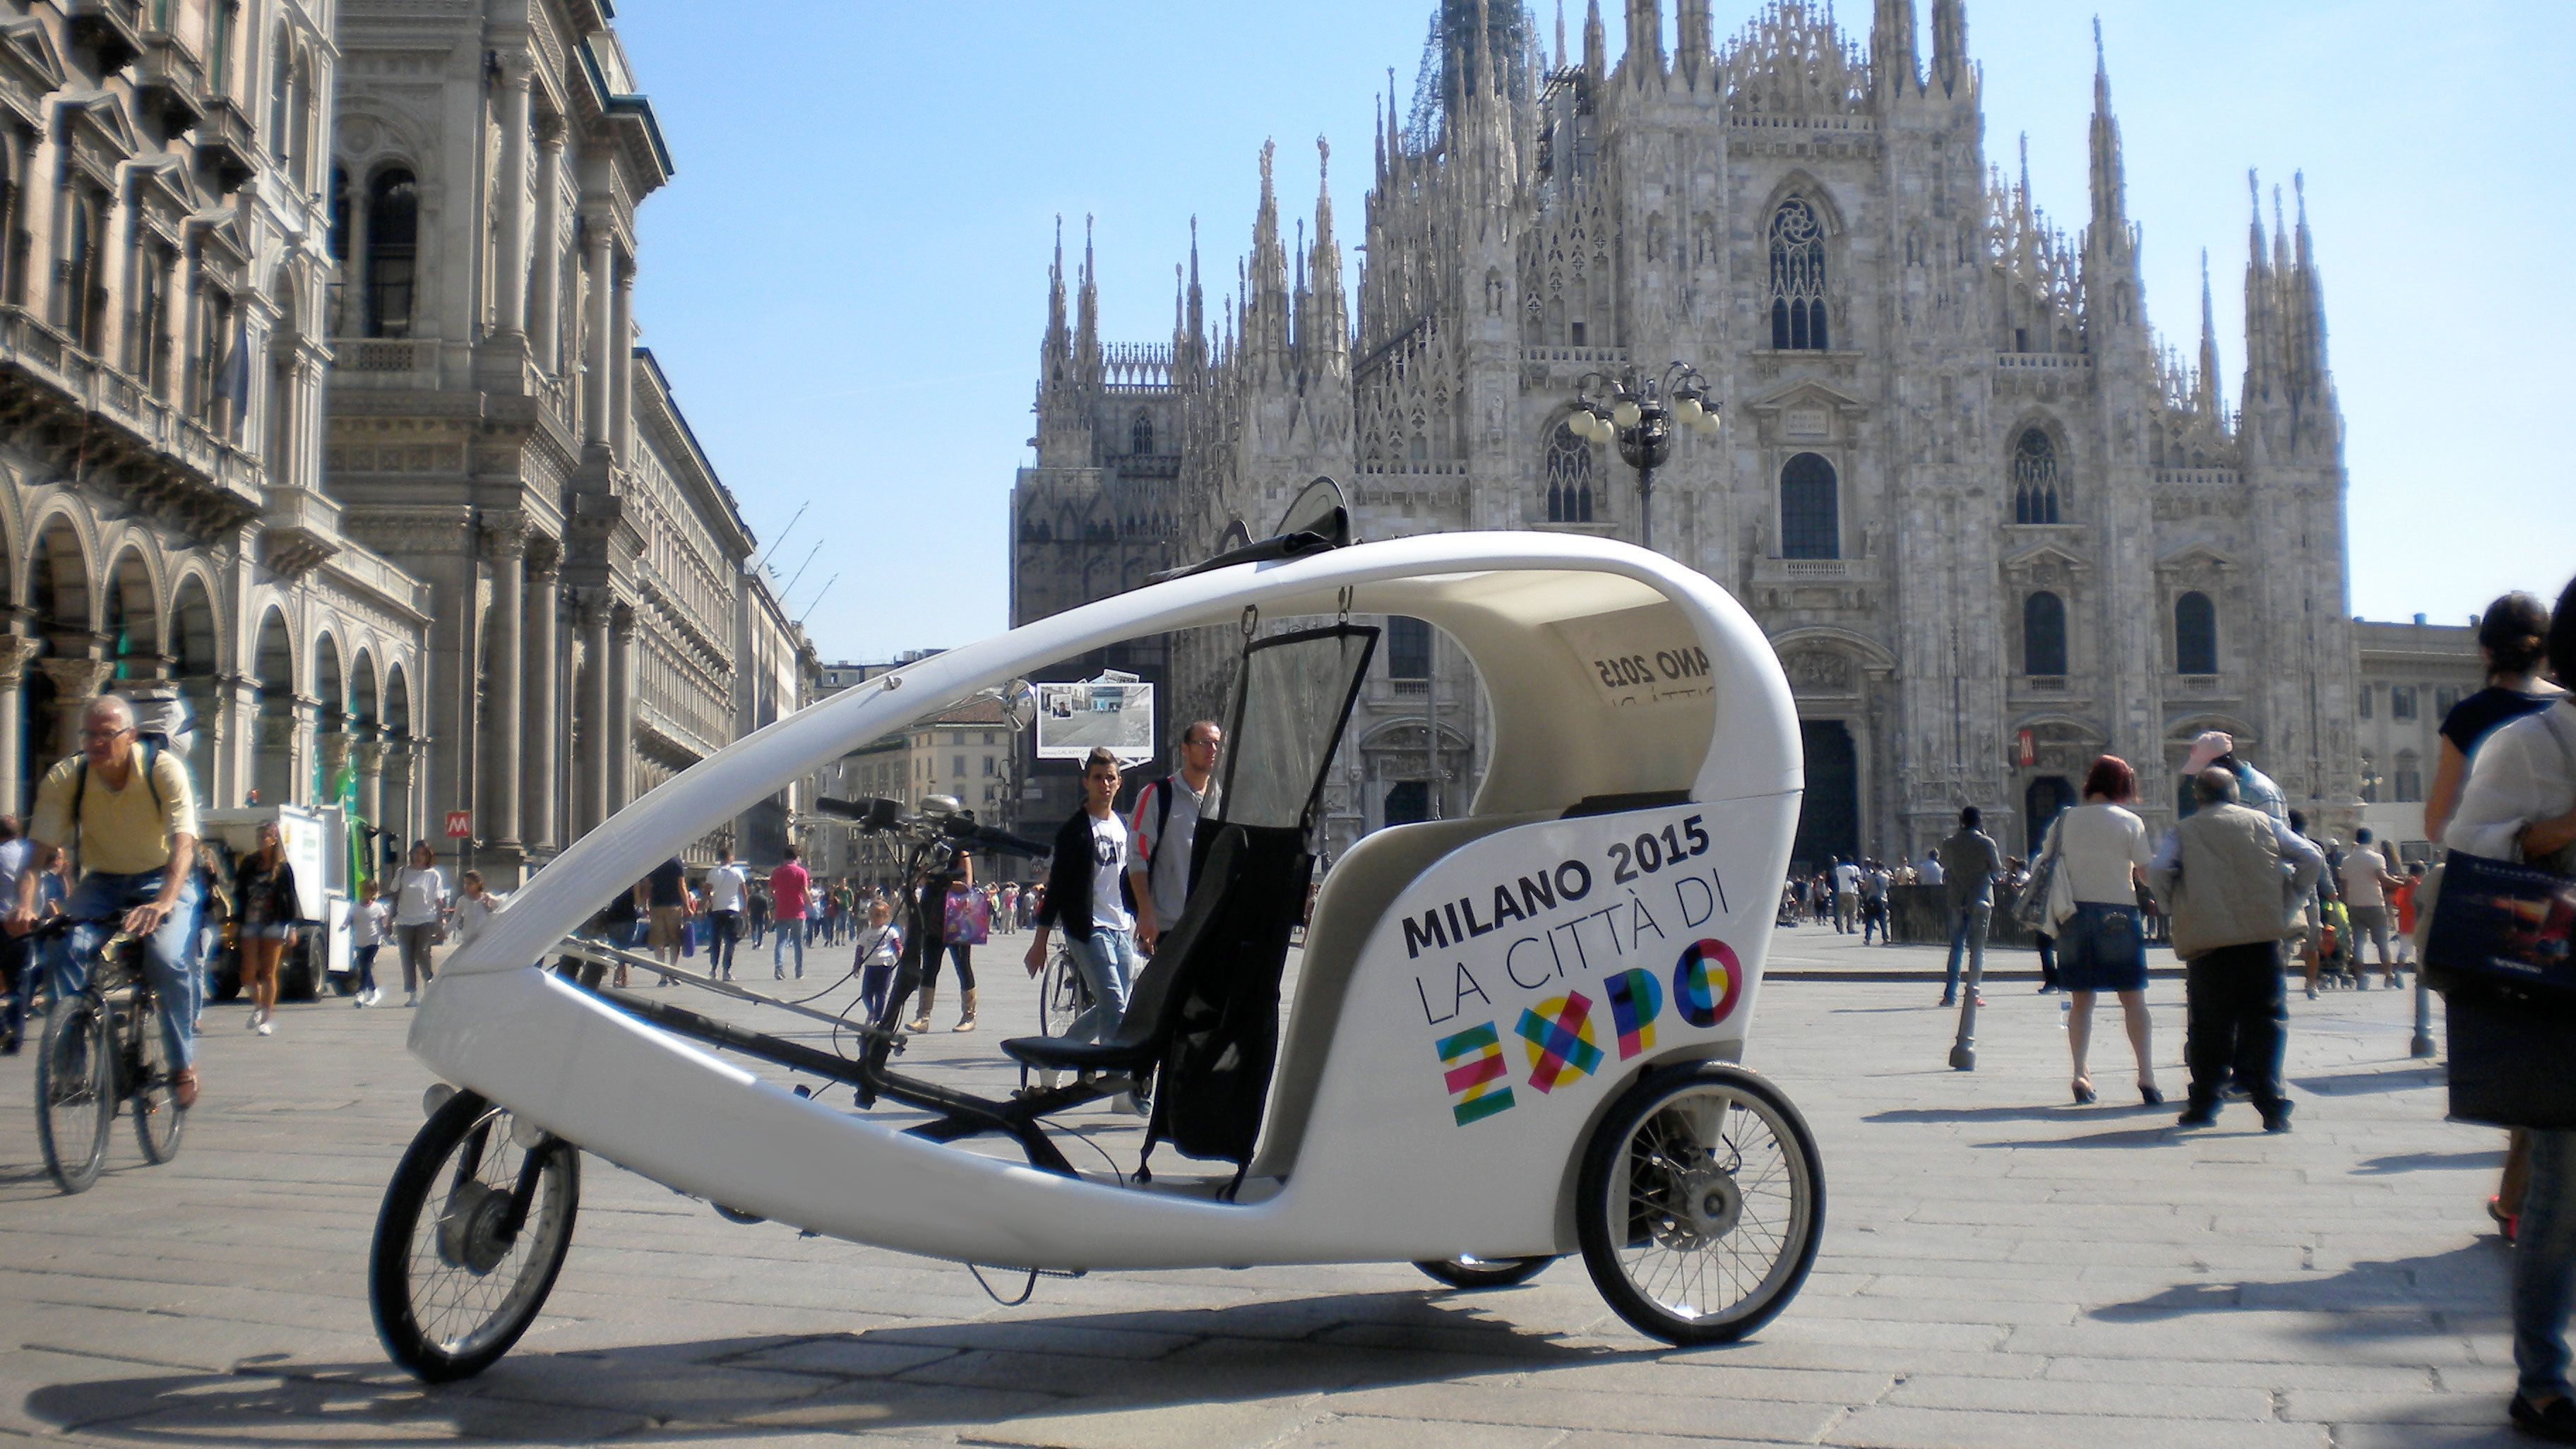 Rickshaws with a cathedral in the background in Milan